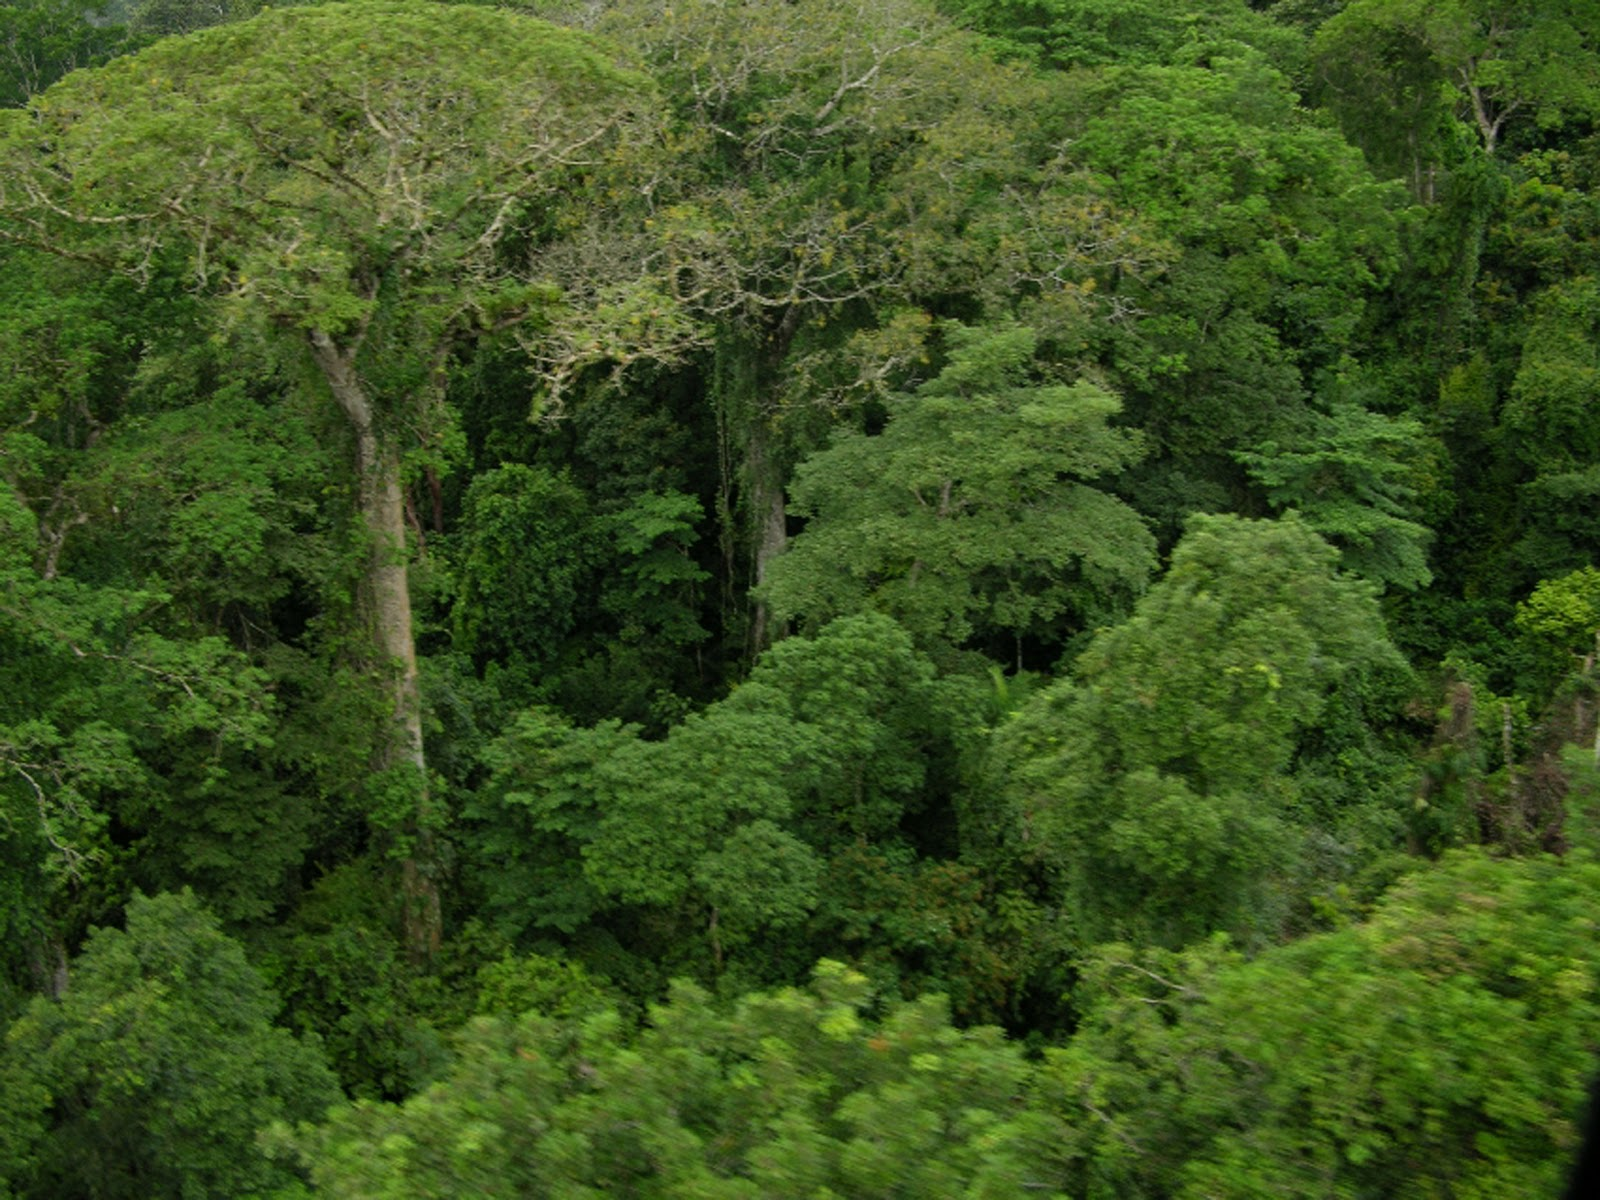 Imagenes De Bosques Tropicales: Germain: Criterios Para Describir Un Bosque